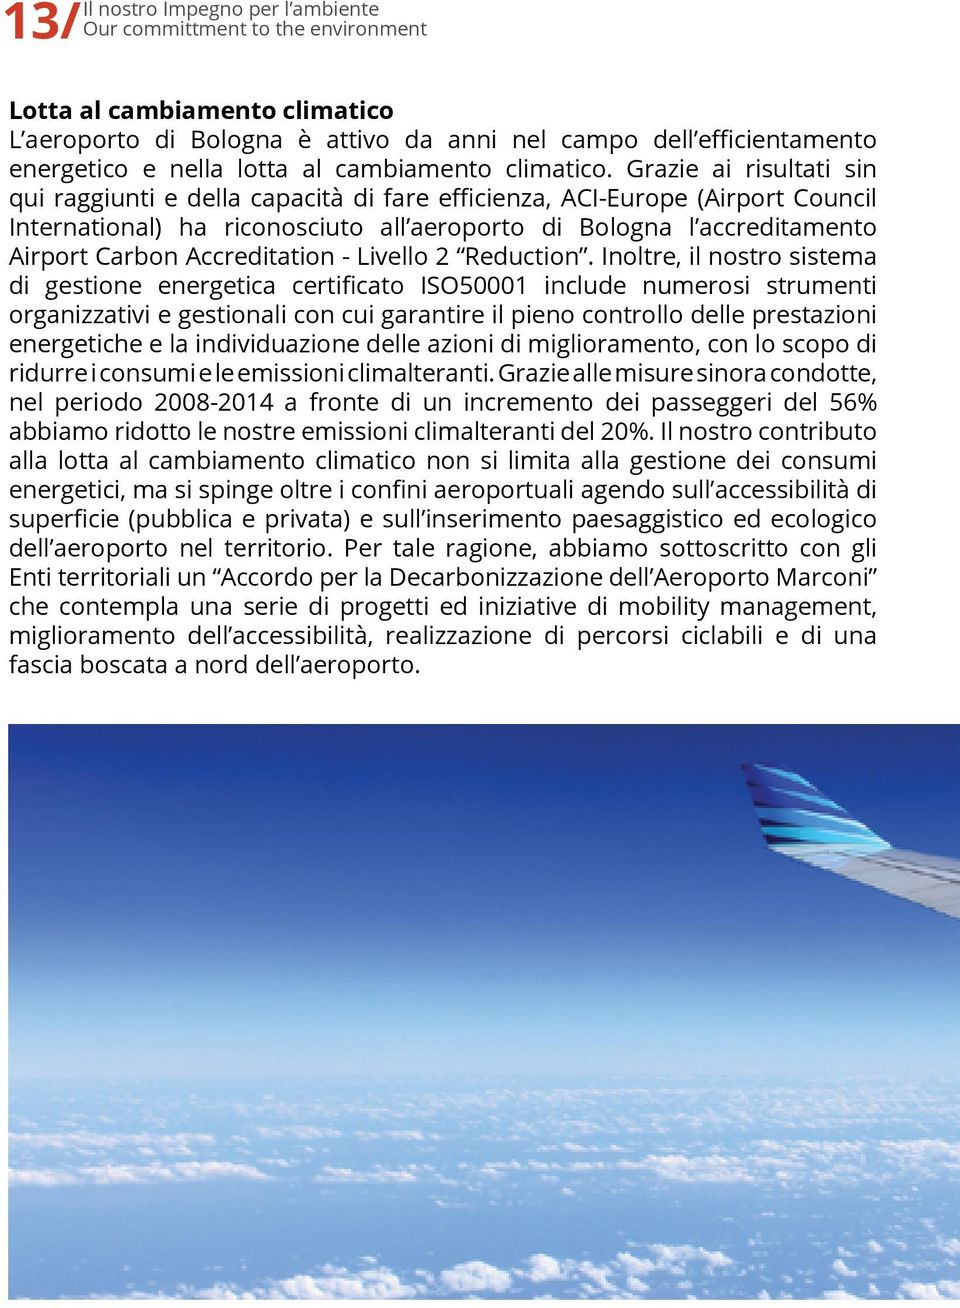 Grazie ai risultati sin qui raggiunti e della capacità di fare efficienza, ACI-Europe (Airport Council International) ha riconosciuto all aeroporto di Bologna l accreditamento Airport Carbon